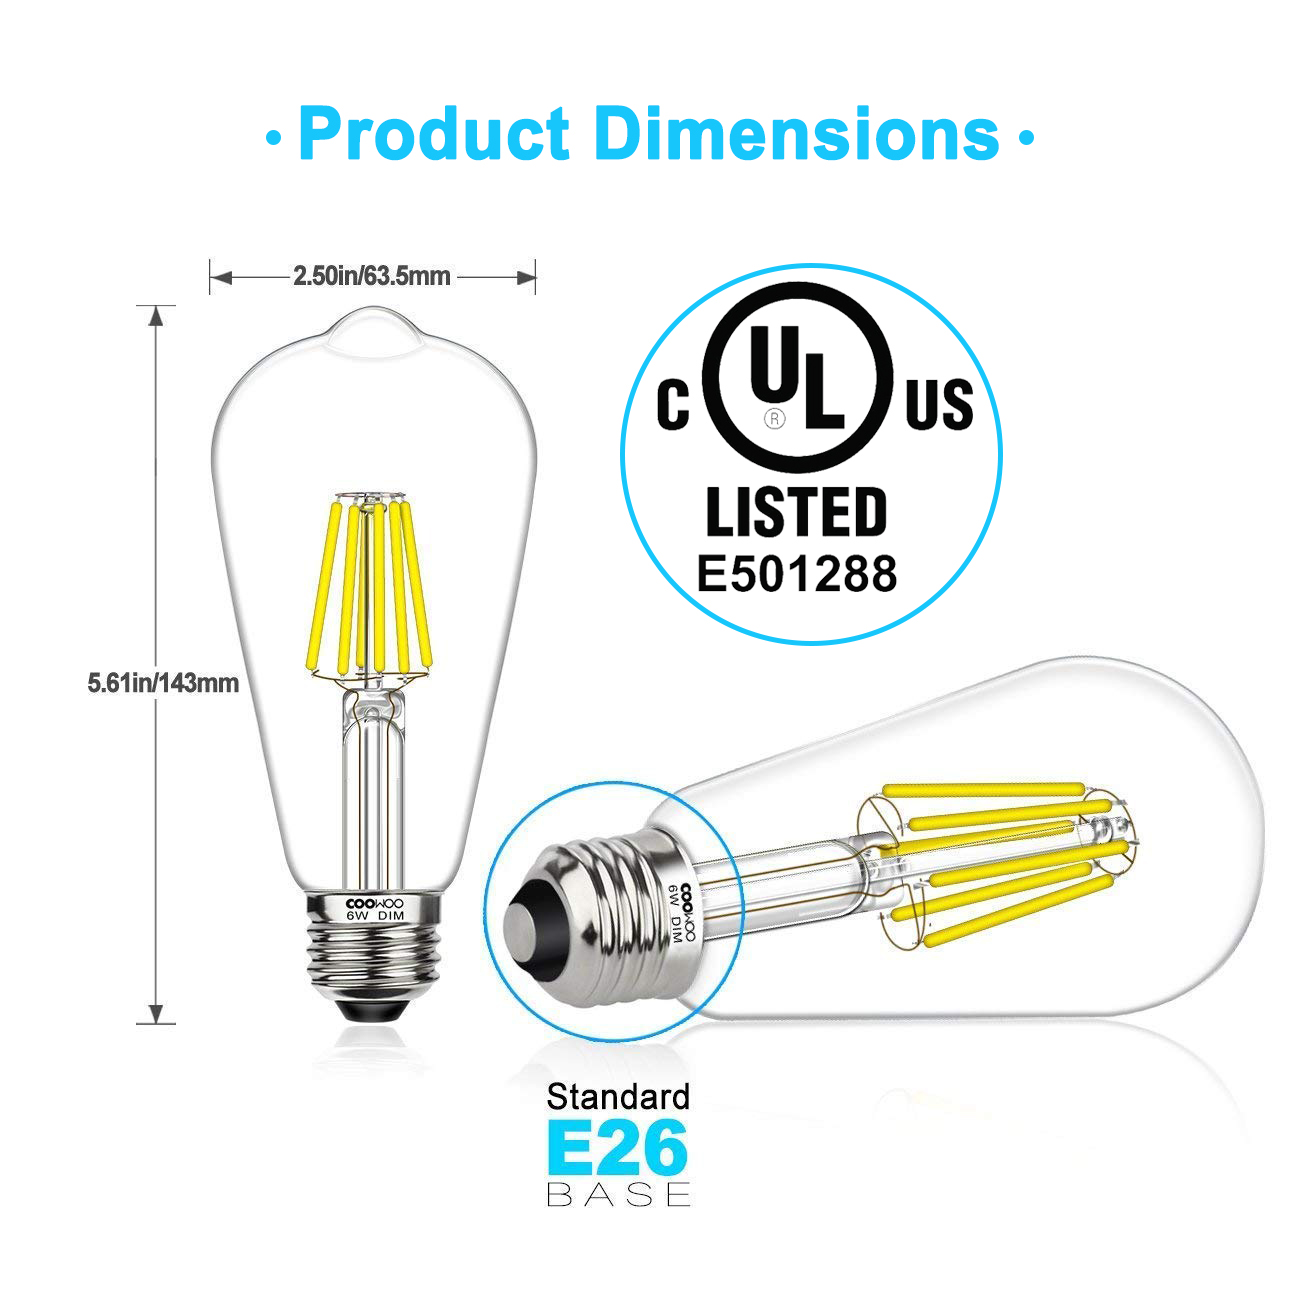 LED Edison Light Bulbs 60W Equivalent Halogen Replacement Dimmable E26 Base Vintage Filament Pendant Light Bulbs 5000K Daylight White 6W UL-Listed Commercial Island Light Bulbs 600lm 6 Pack by COOWOO